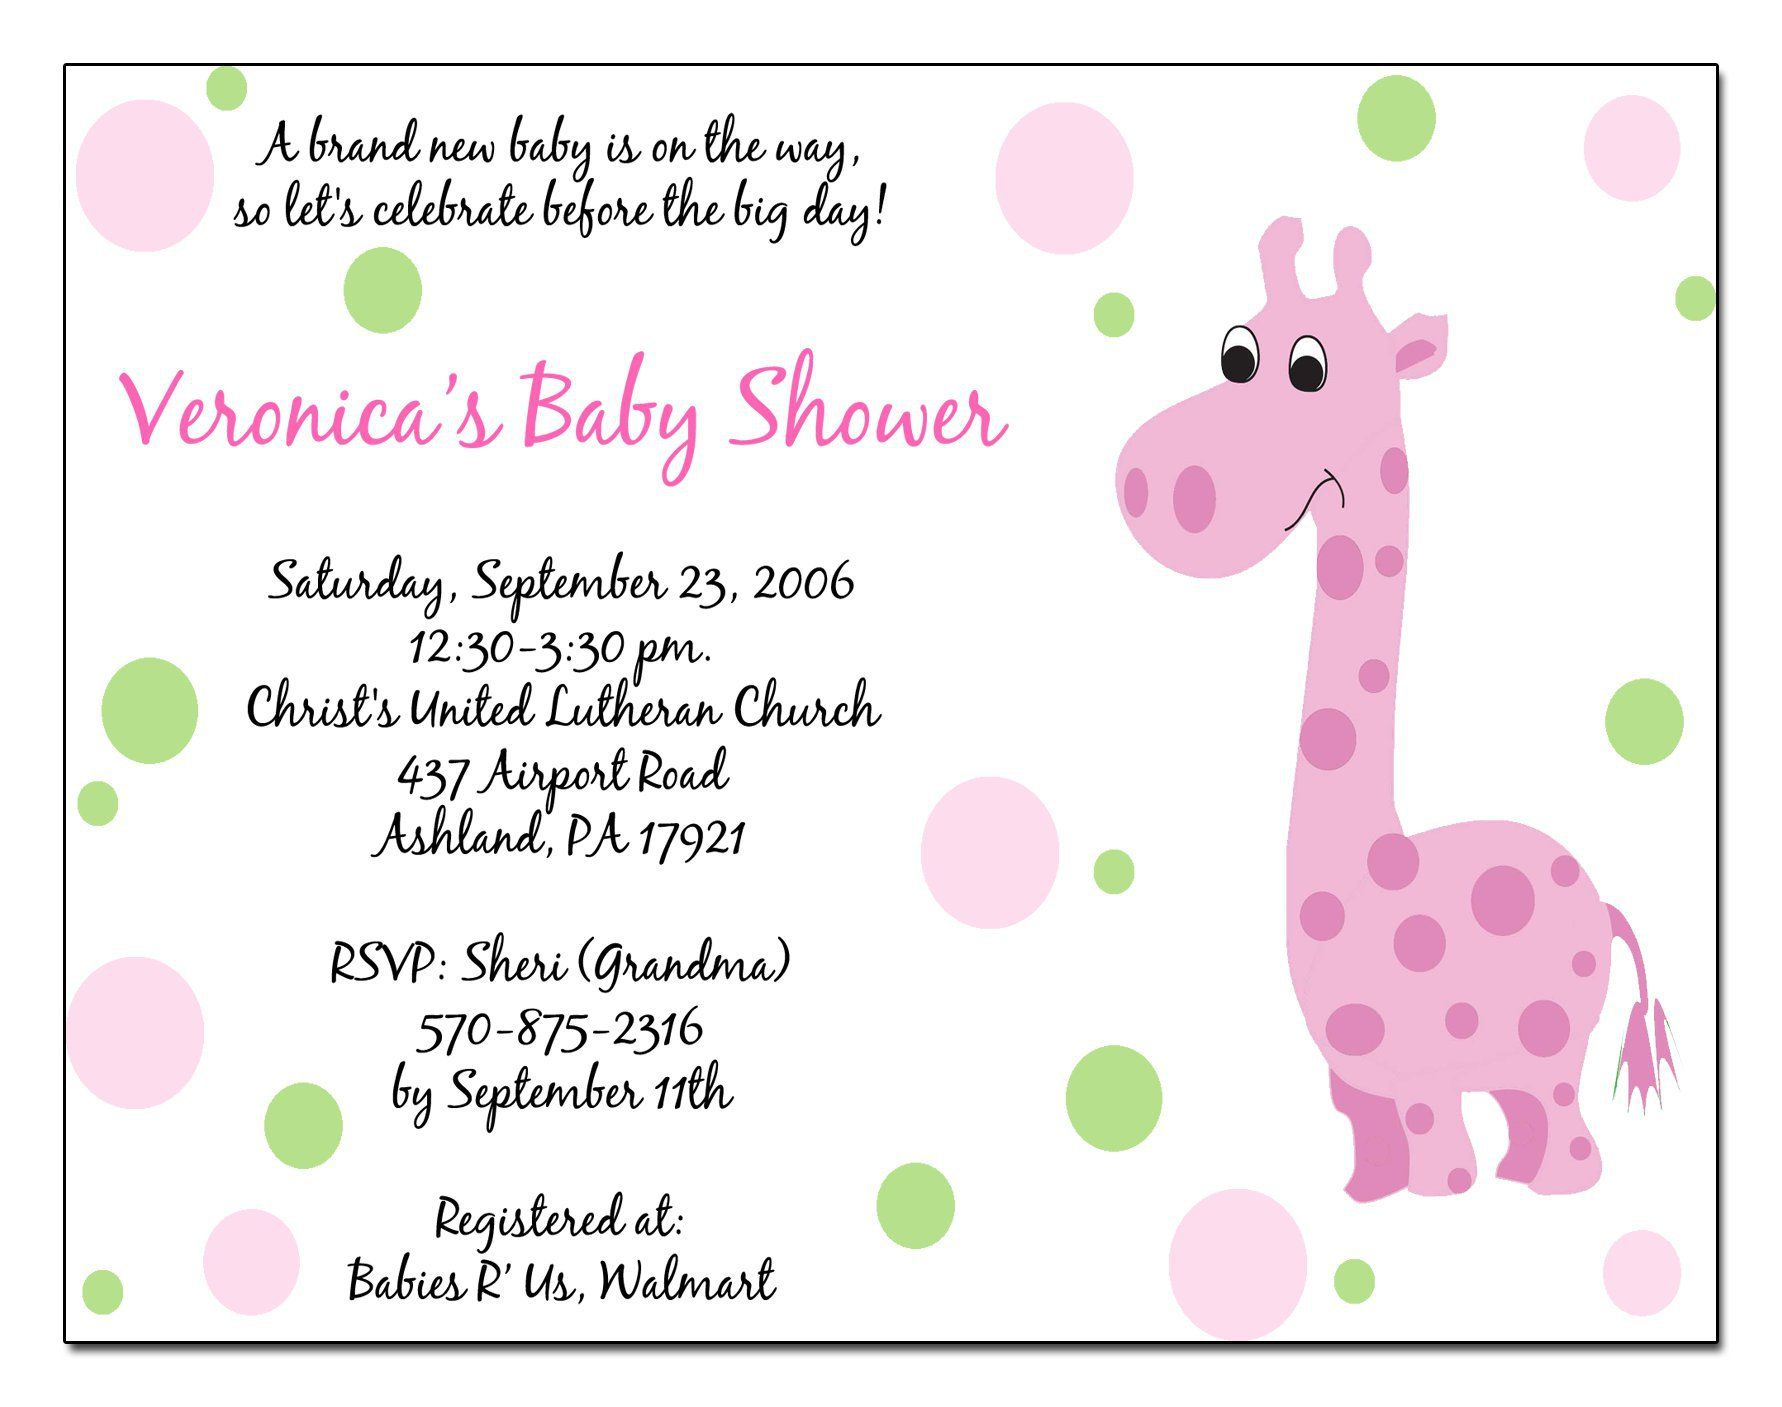 The Fascinating Free Baby Shower Invitation Templates Download Digital P Free Baby Shower Invitations Shower Invitations Free Printable Baby Shower Invitations